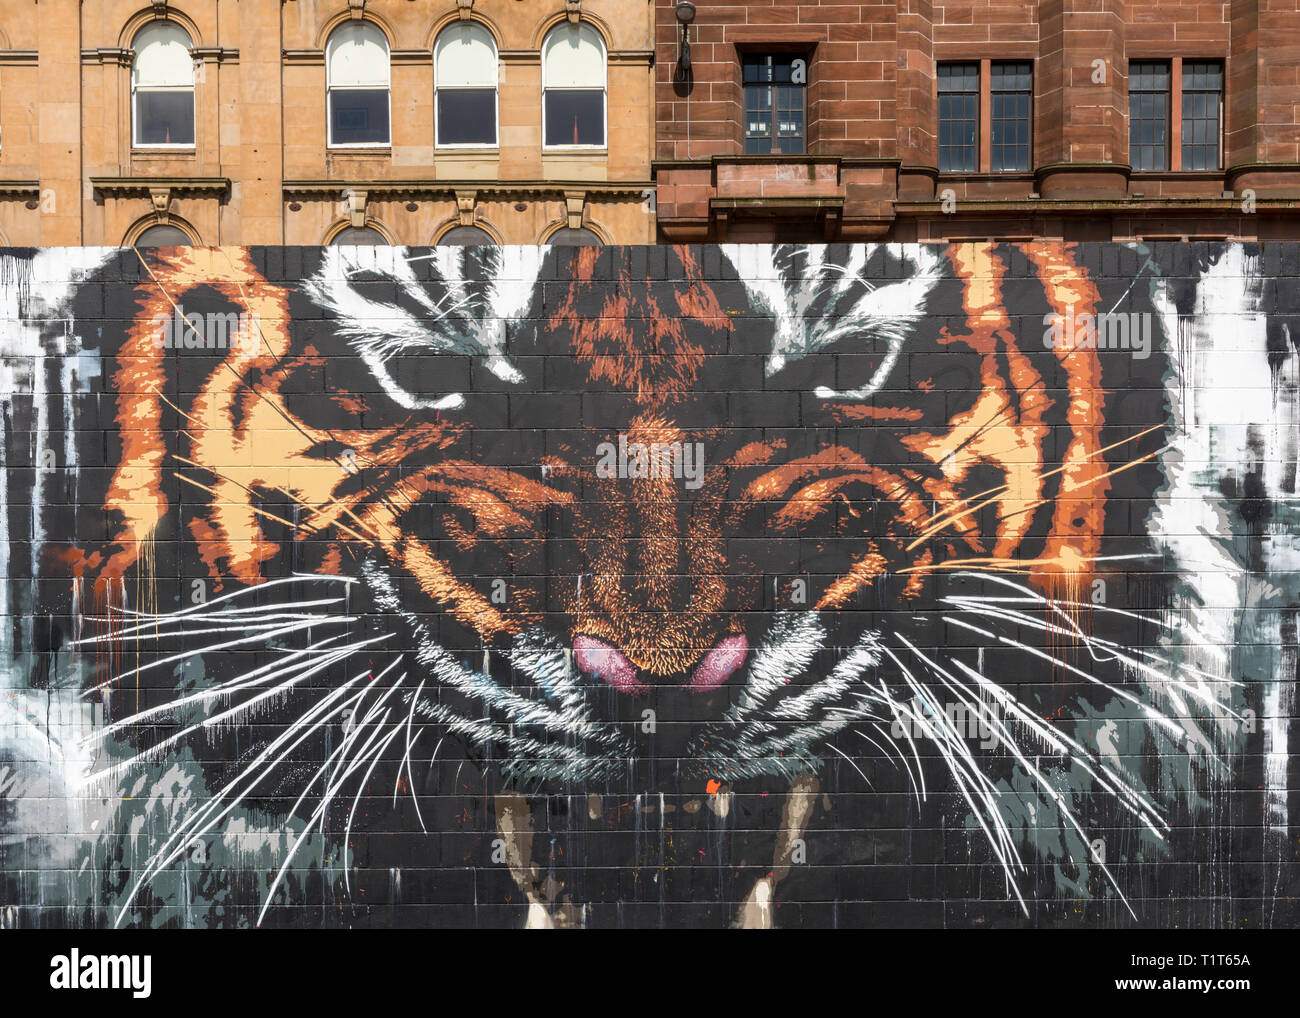 A large wall mural of a snarling tiger with buildings behind it, Glasgow, Scotland - Stock Image